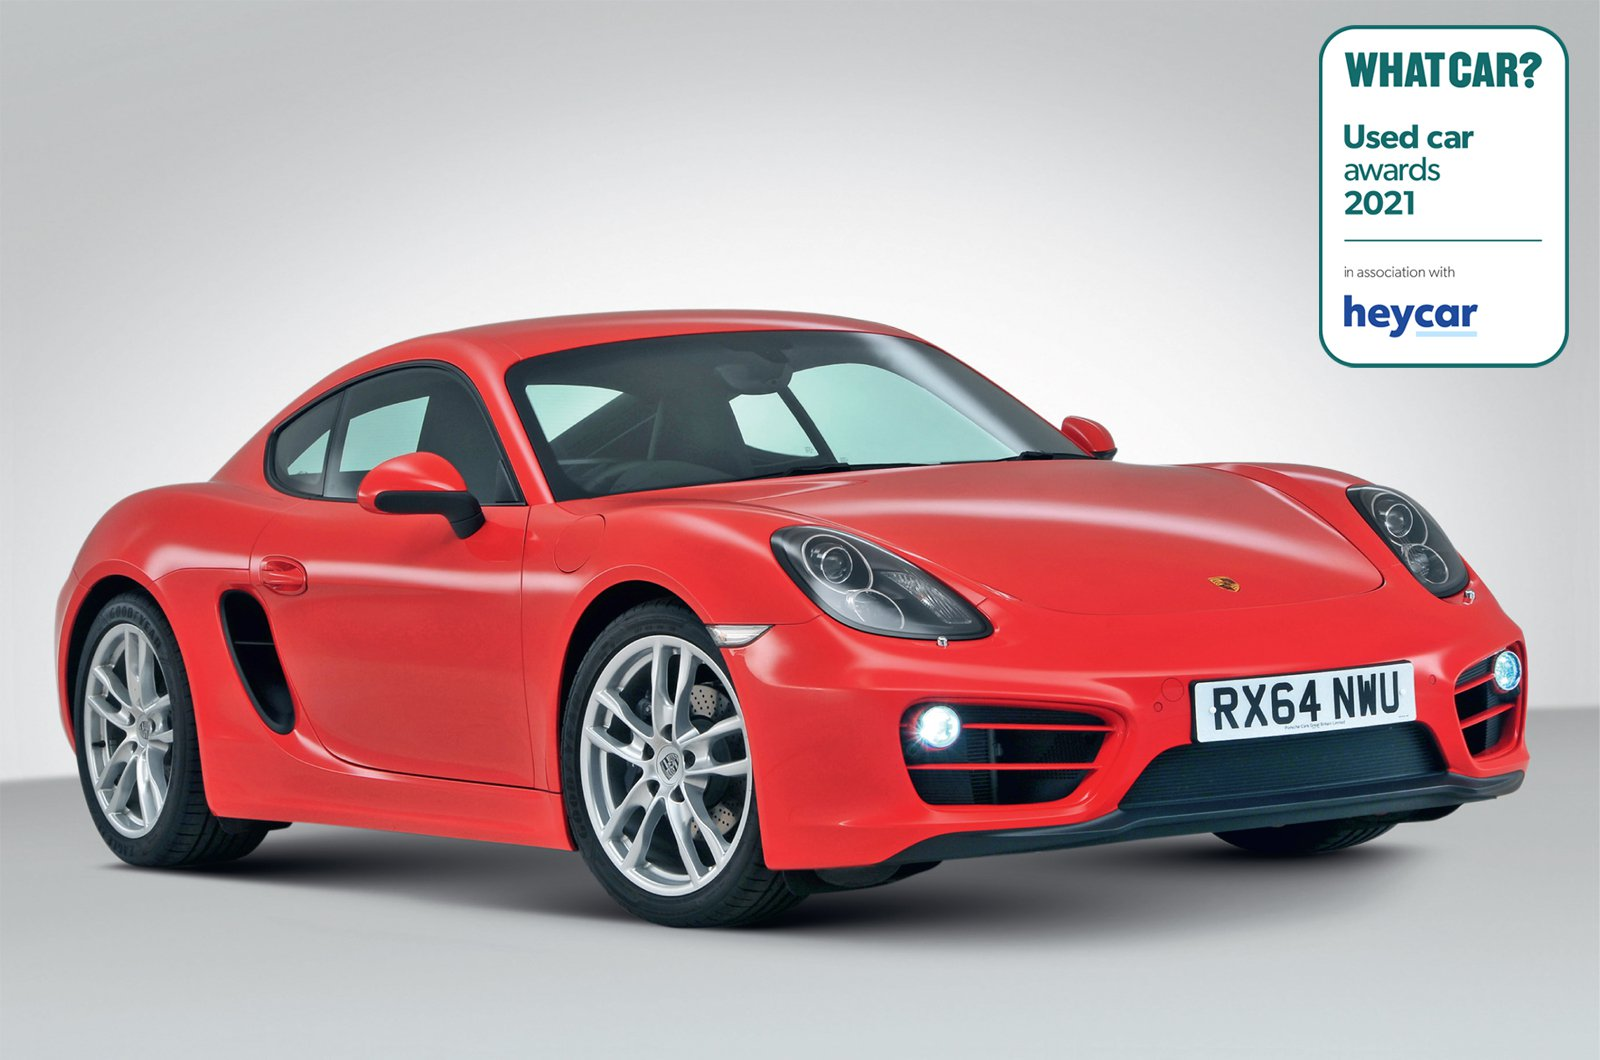 Used Car Awards 2021 - Porsche Cayman